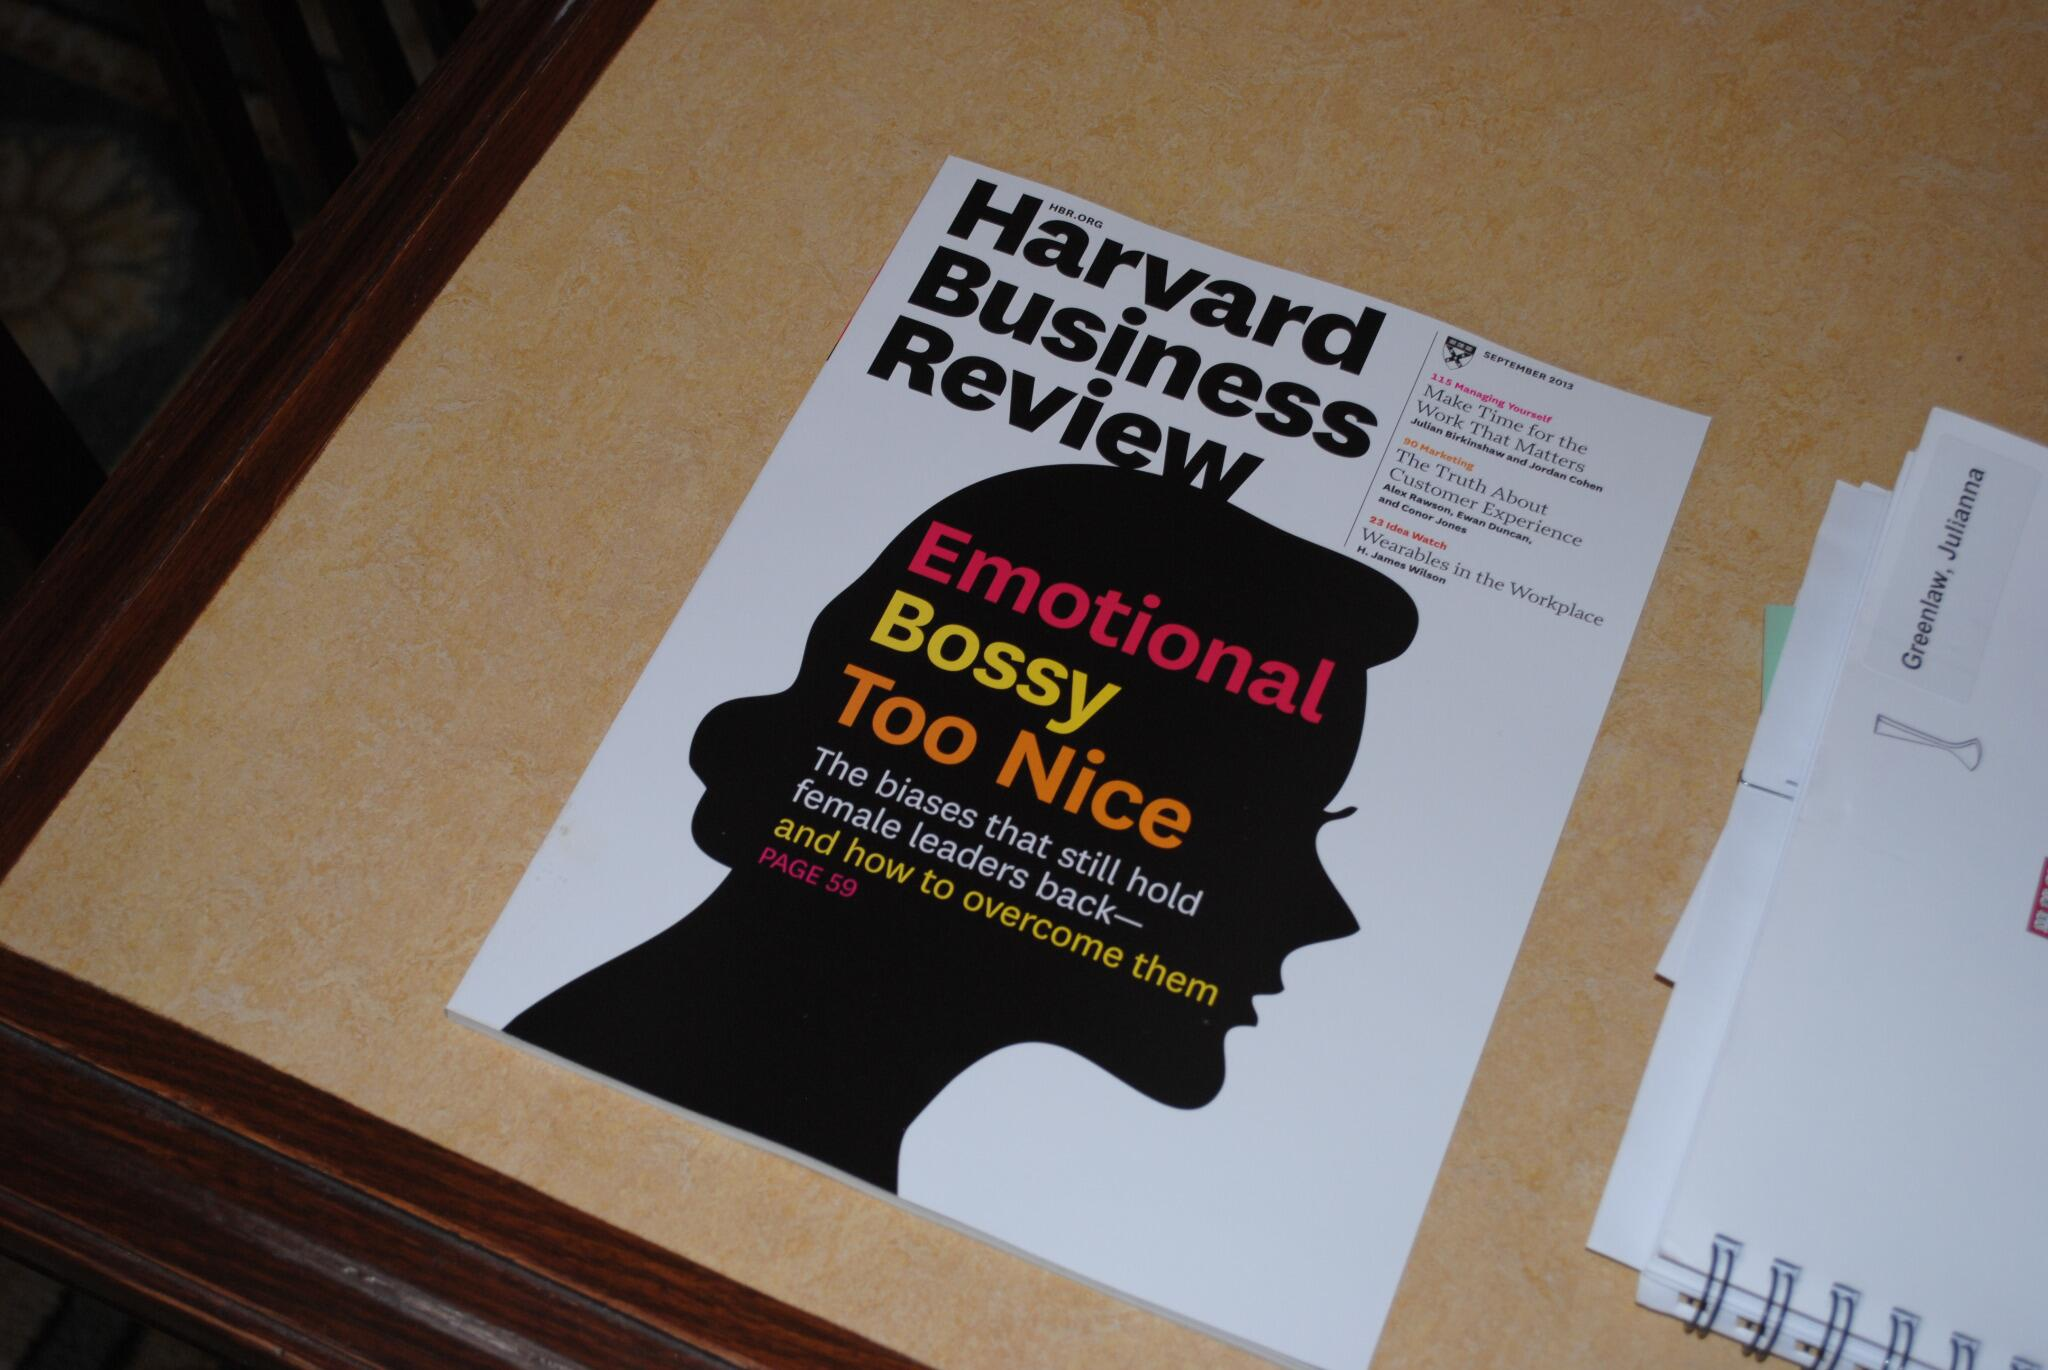 """Reason #132 why #HBSreunion2013 is awesome? Complimentary issues of @HarvardBiz at """"Women's Networking Breakfast!"""" http://t.co/KatHxwe41l"""